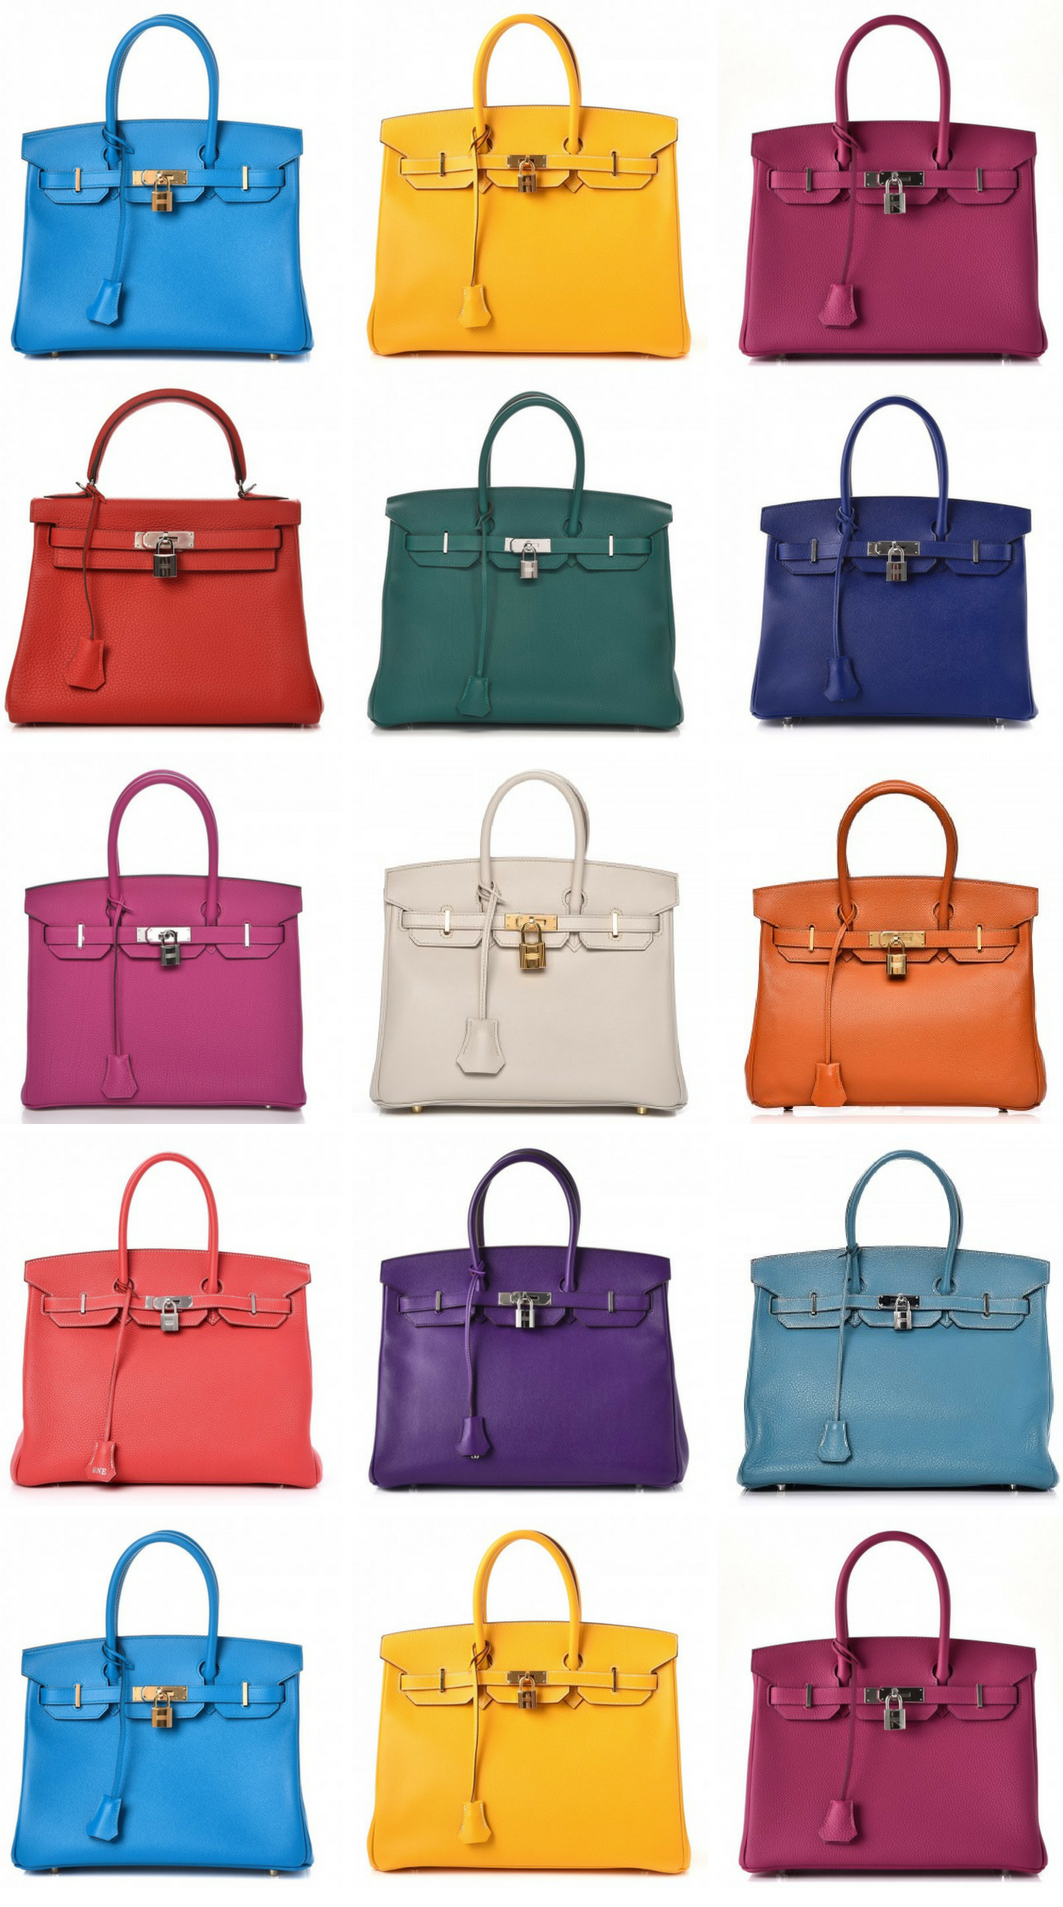 8e2ff8956c73 FOR IMMEDIATE RELEASE  Make Your Hermes Birkin Ownership Dream a Reality – Hermes  Birkin + Kelly Handbags AVAILABLE NOW at  Fashionphile 185 Colour Shades ...